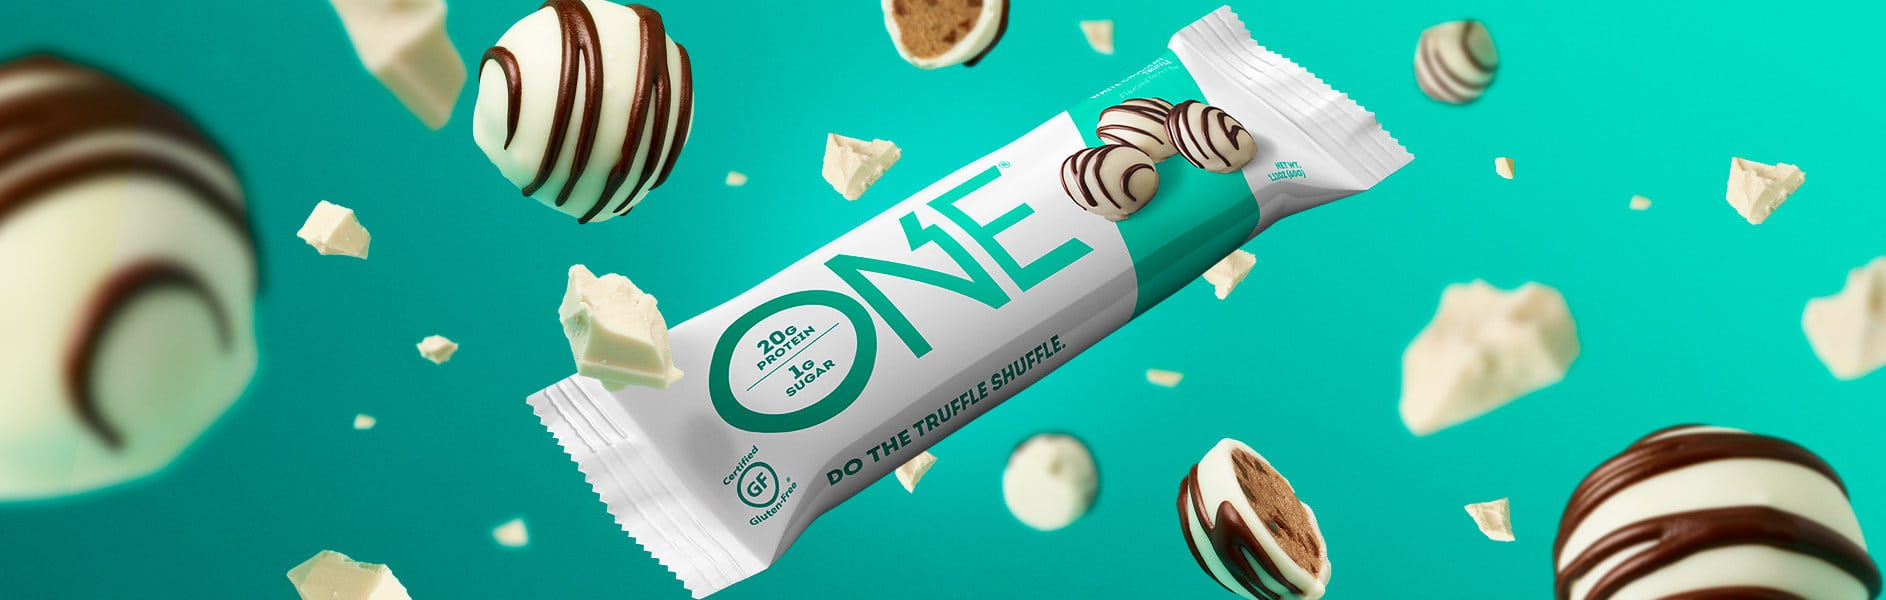 ONE Brands Debuts White Chocolate Truffle Bar